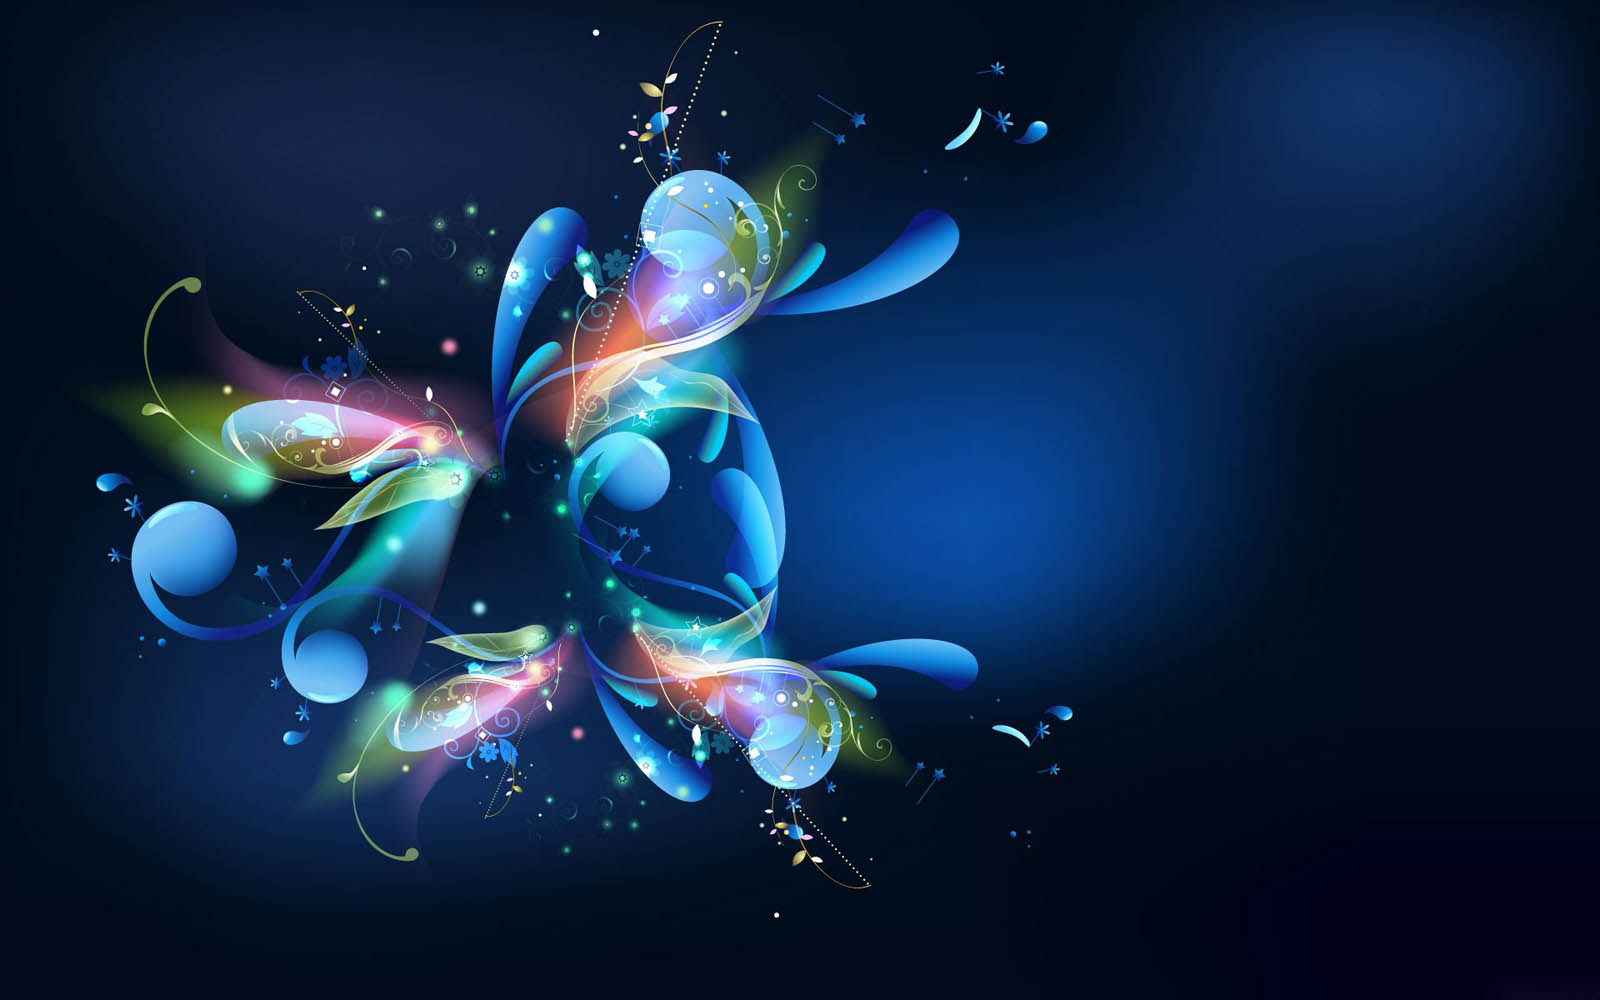 Graphic Abstract Wallpapers BackgroundsPhotos Images and Pictures 1600x1000